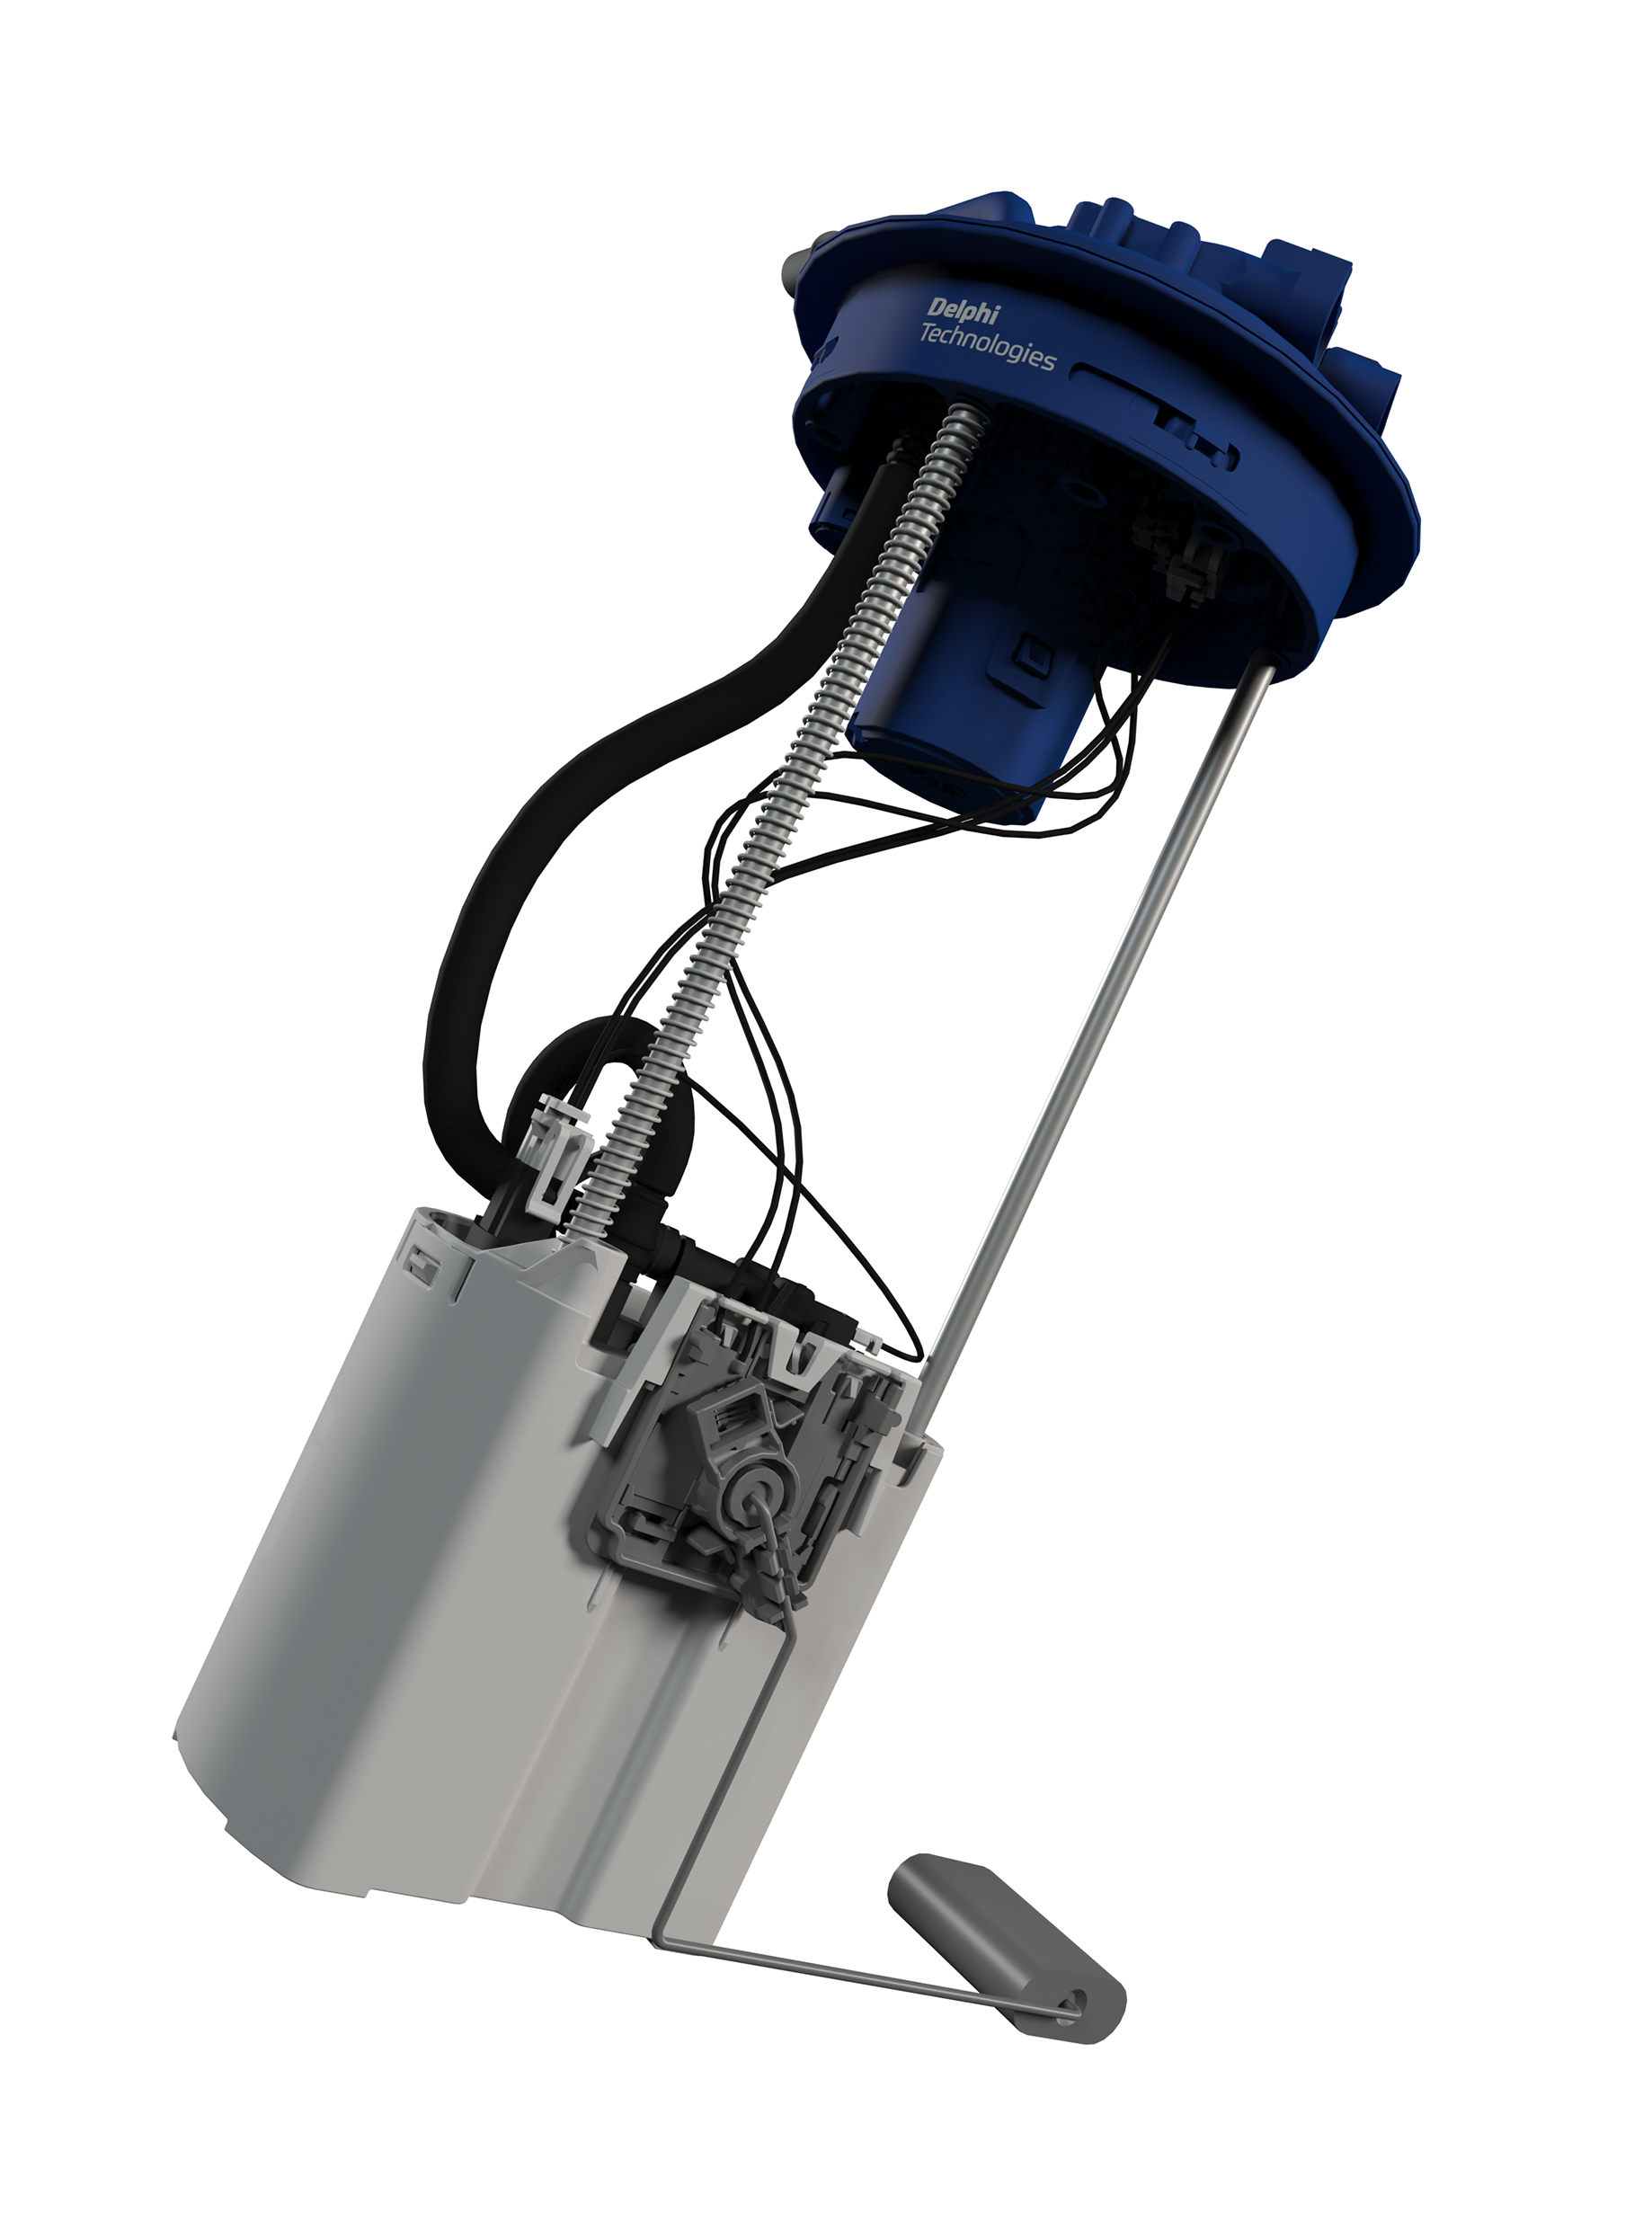 Product image of a Delphi Technologies Fuel Pump